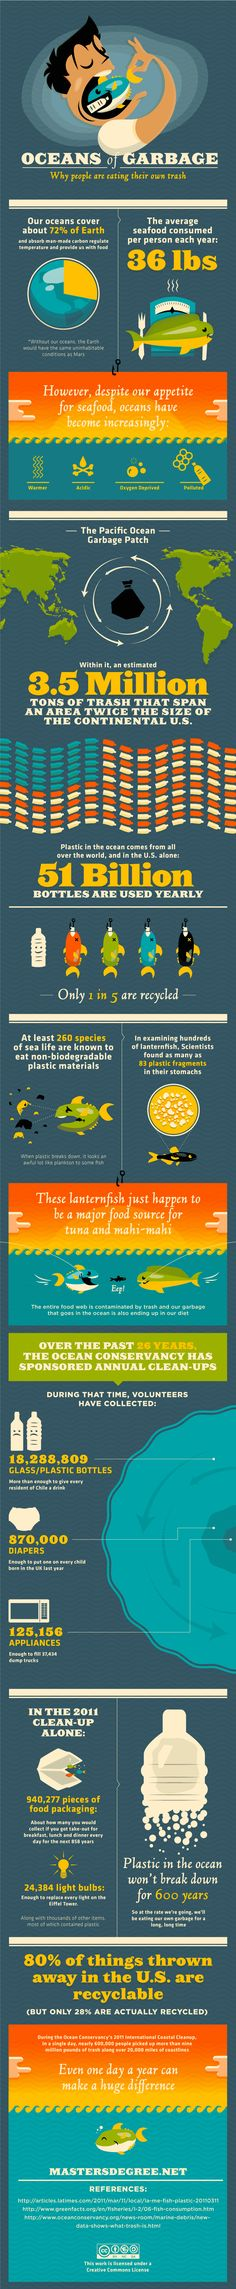 ocean-of-garbage info-graphic